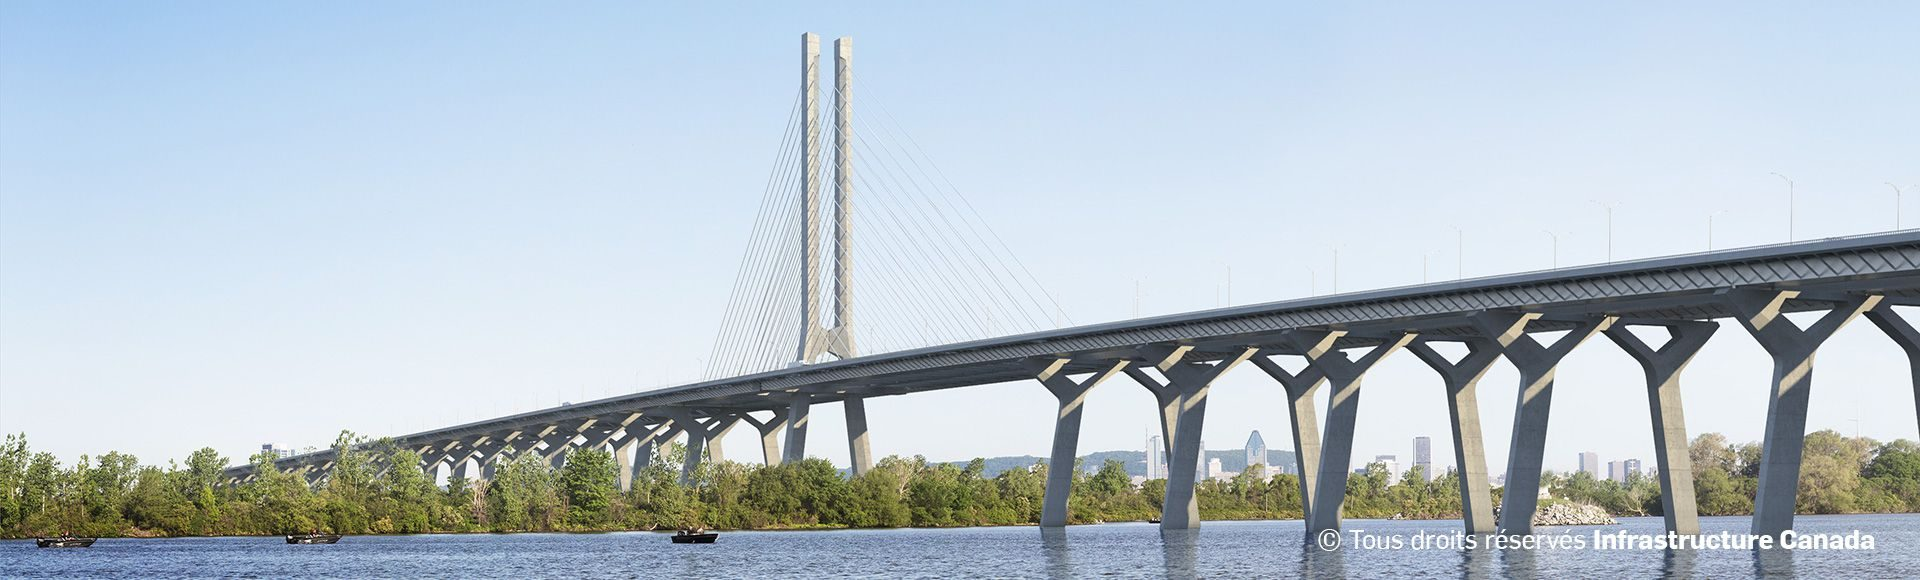 new-samuel-de-champlain-bridge-header-fr